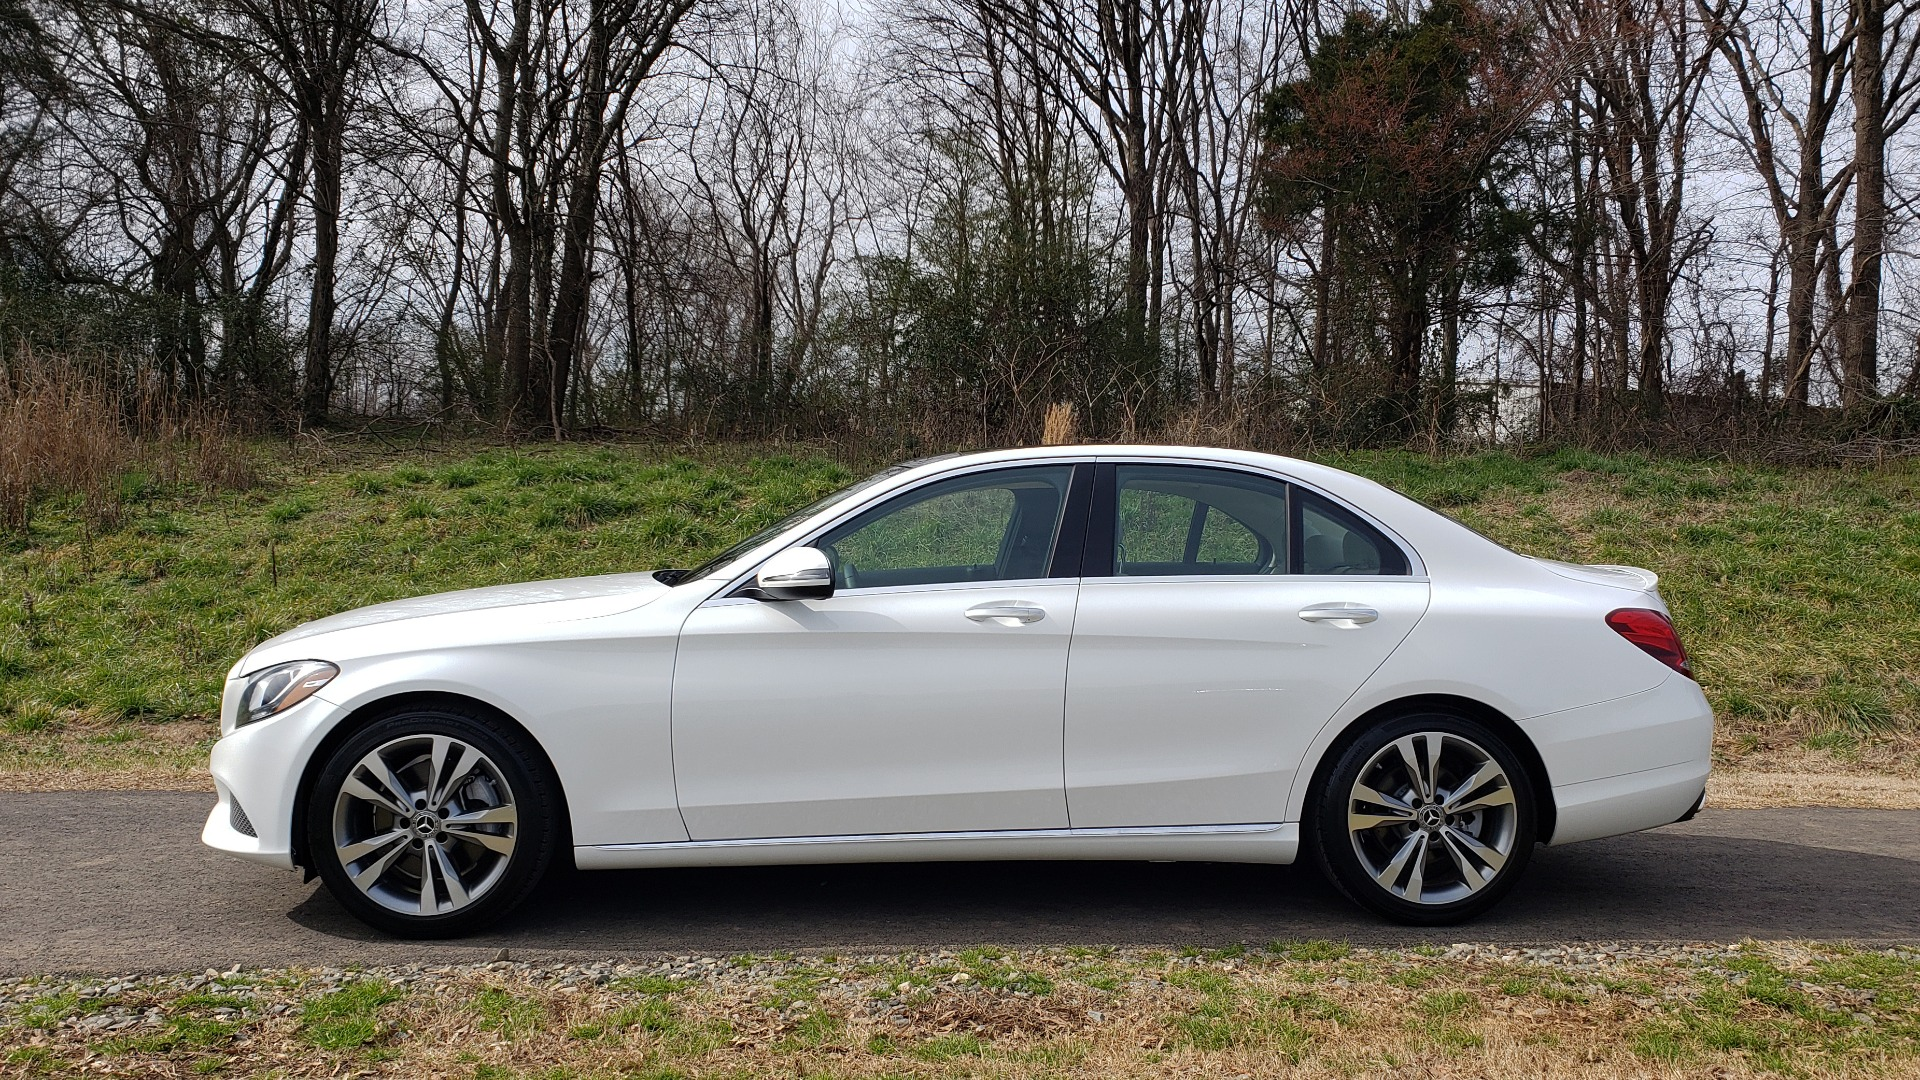 Used 2017 Mercedes-Benz C-CLASS C 300 / PREM PKG / PANO-ROOF / REARVIEW / HTD STS for sale Sold at Formula Imports in Charlotte NC 28227 2